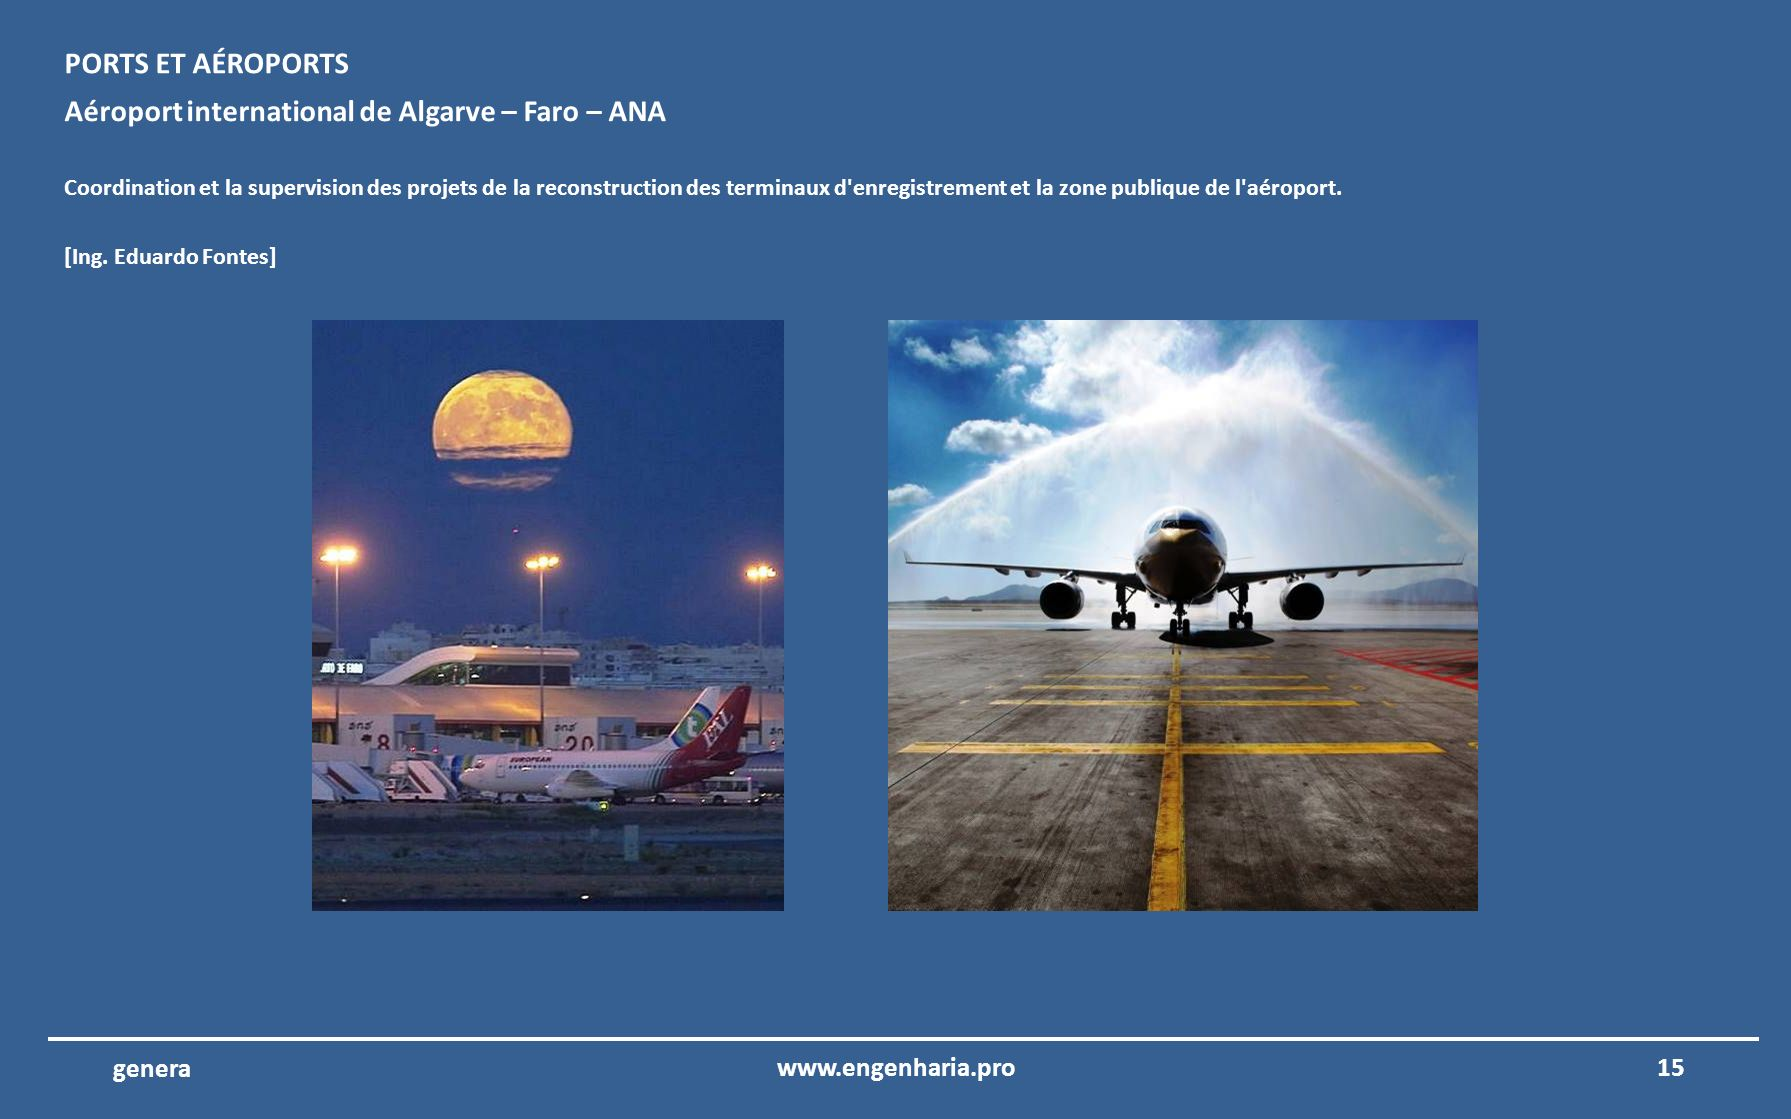 Aéroport international de Algarve – Faro – ANA